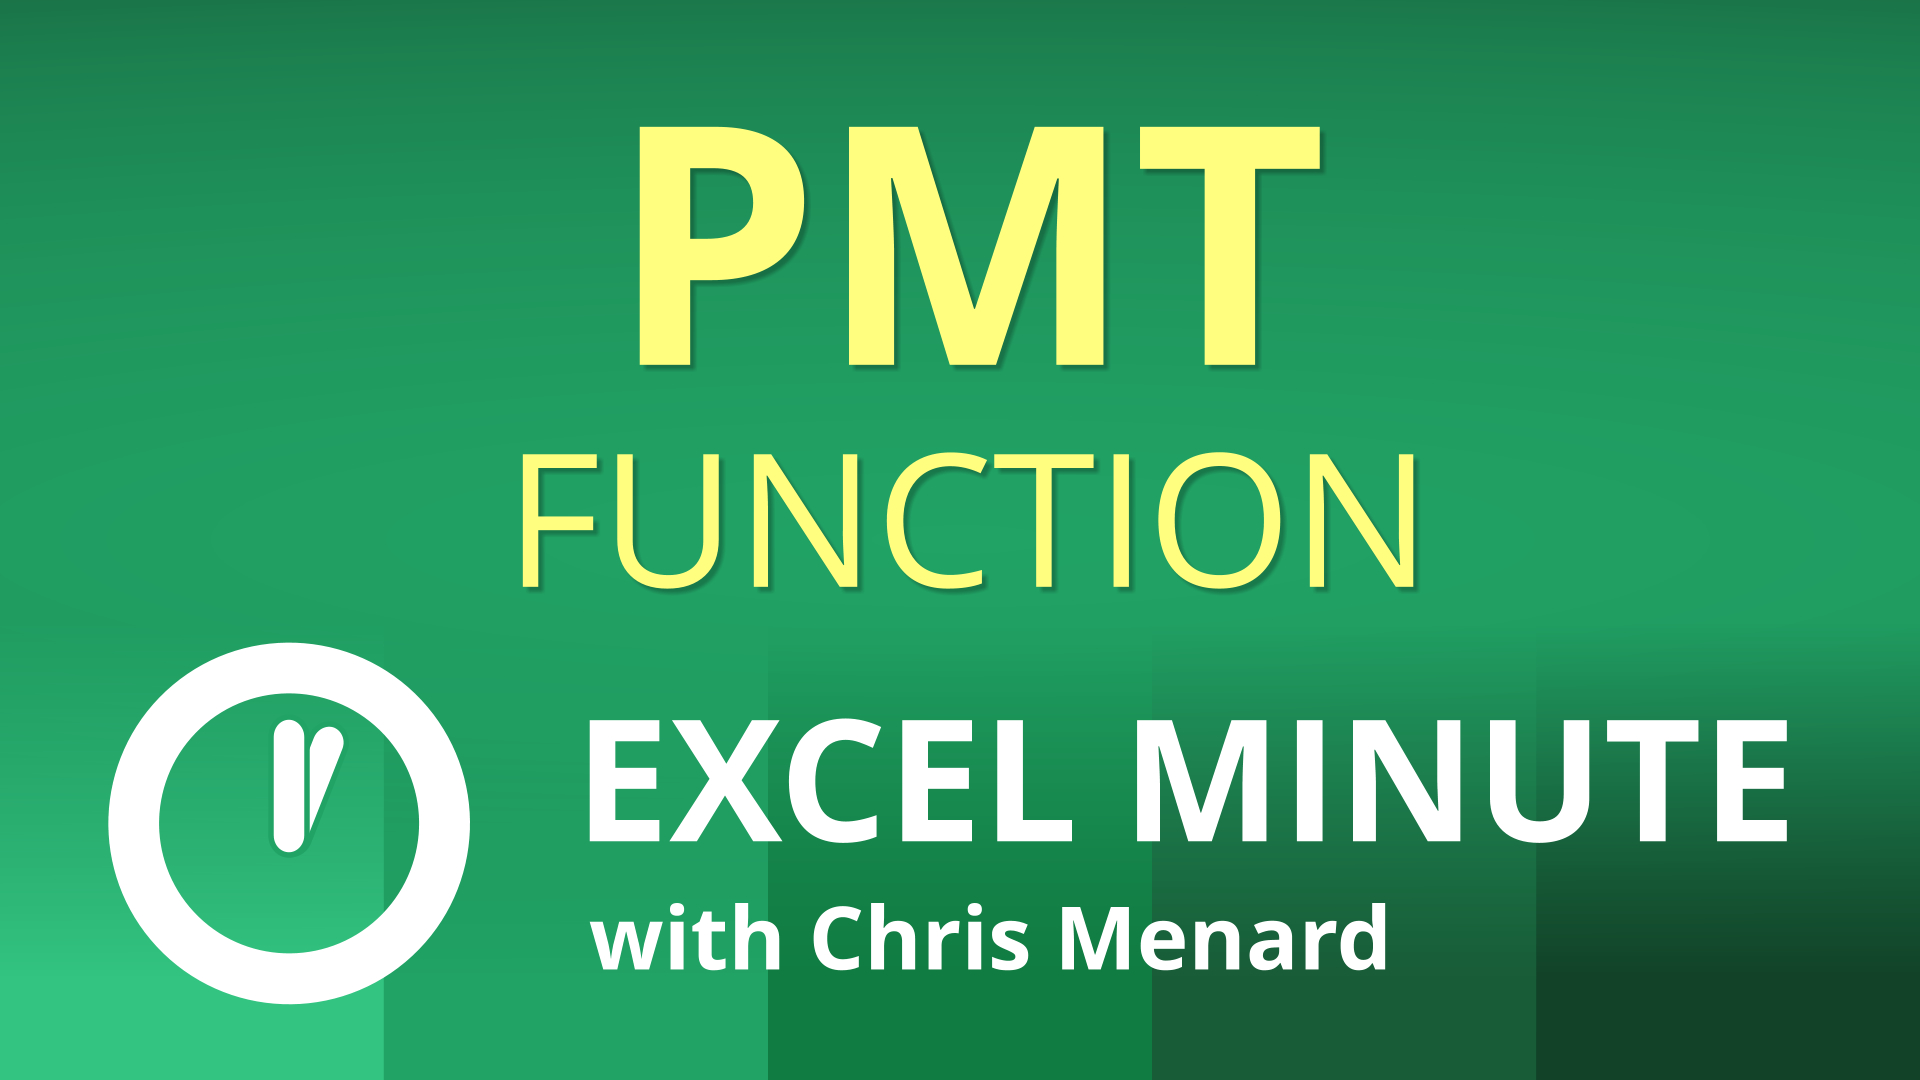 PMT Function in Excel - how to use it to calculate loan payment